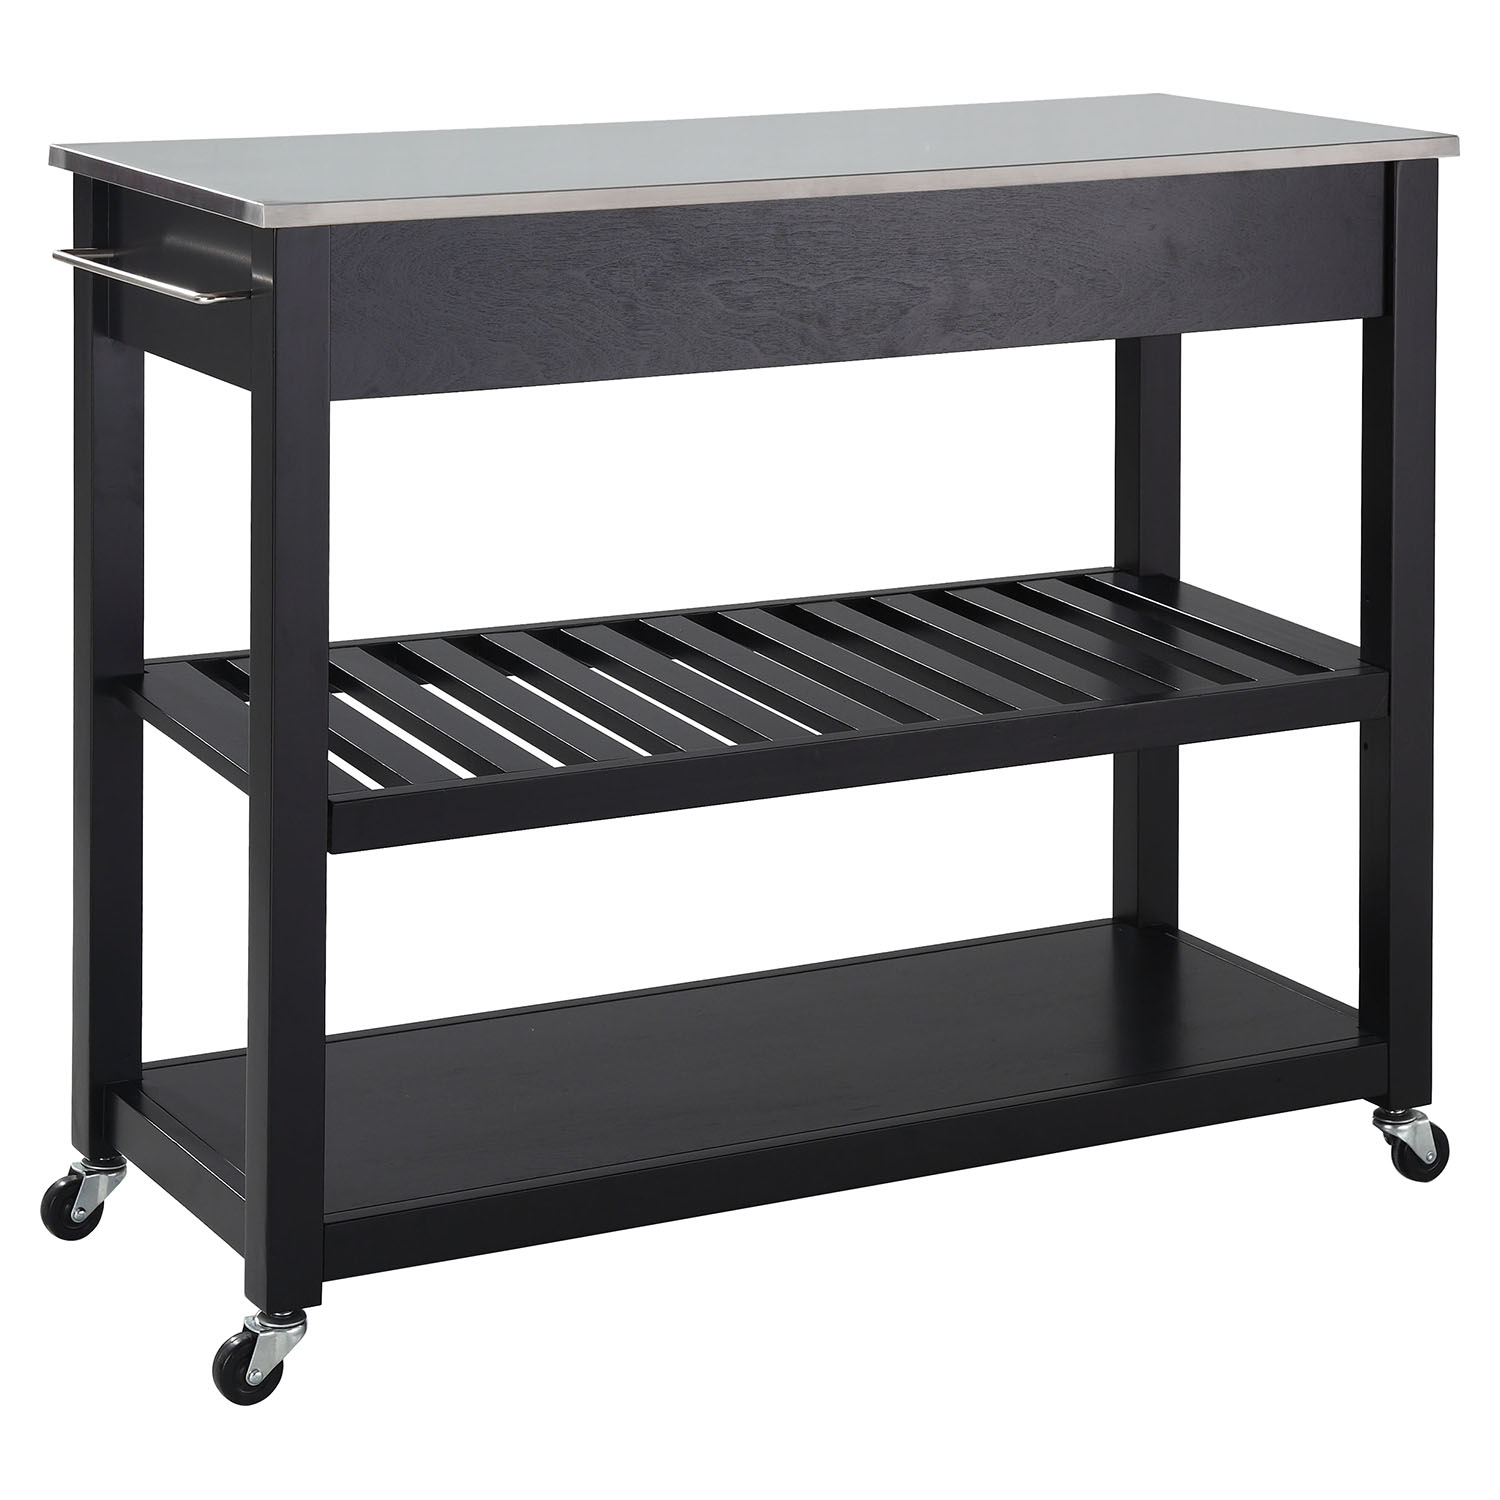 black kitchen island with stainless steel top quicua com black kitchen island with stainless steel top quicua com